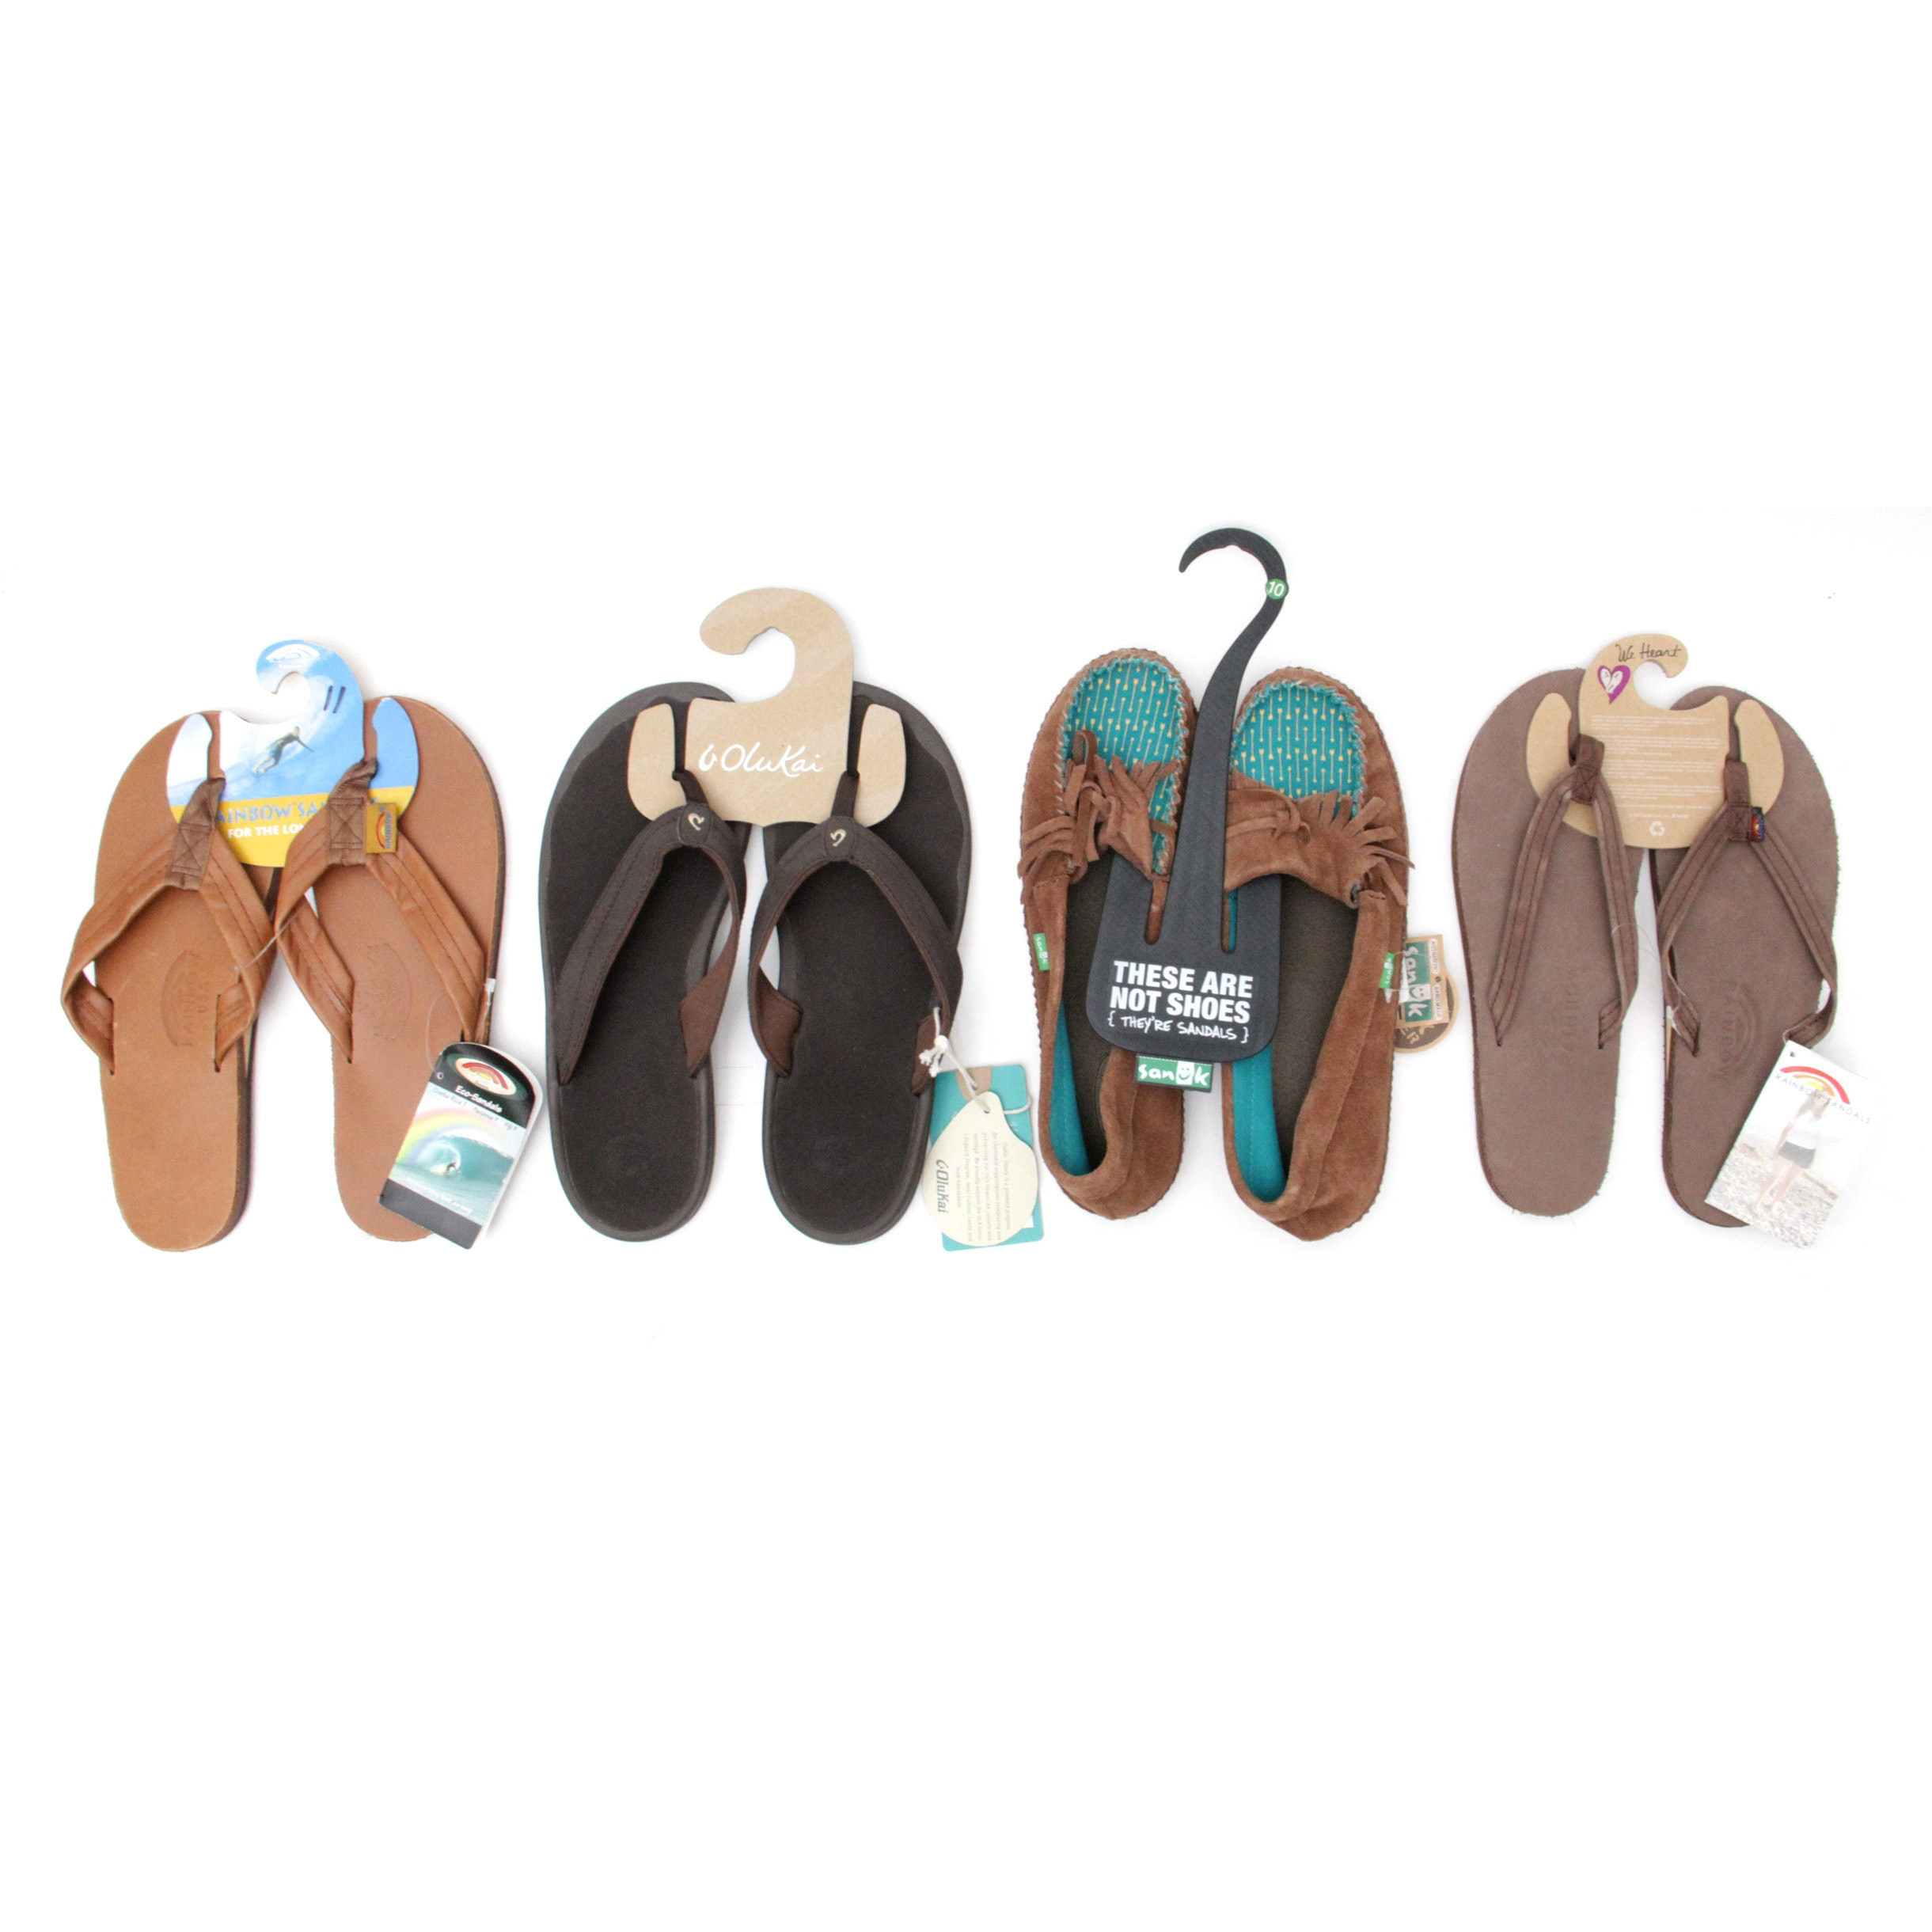 New Women's Flip-Flops and Sandal Shoes Size 10